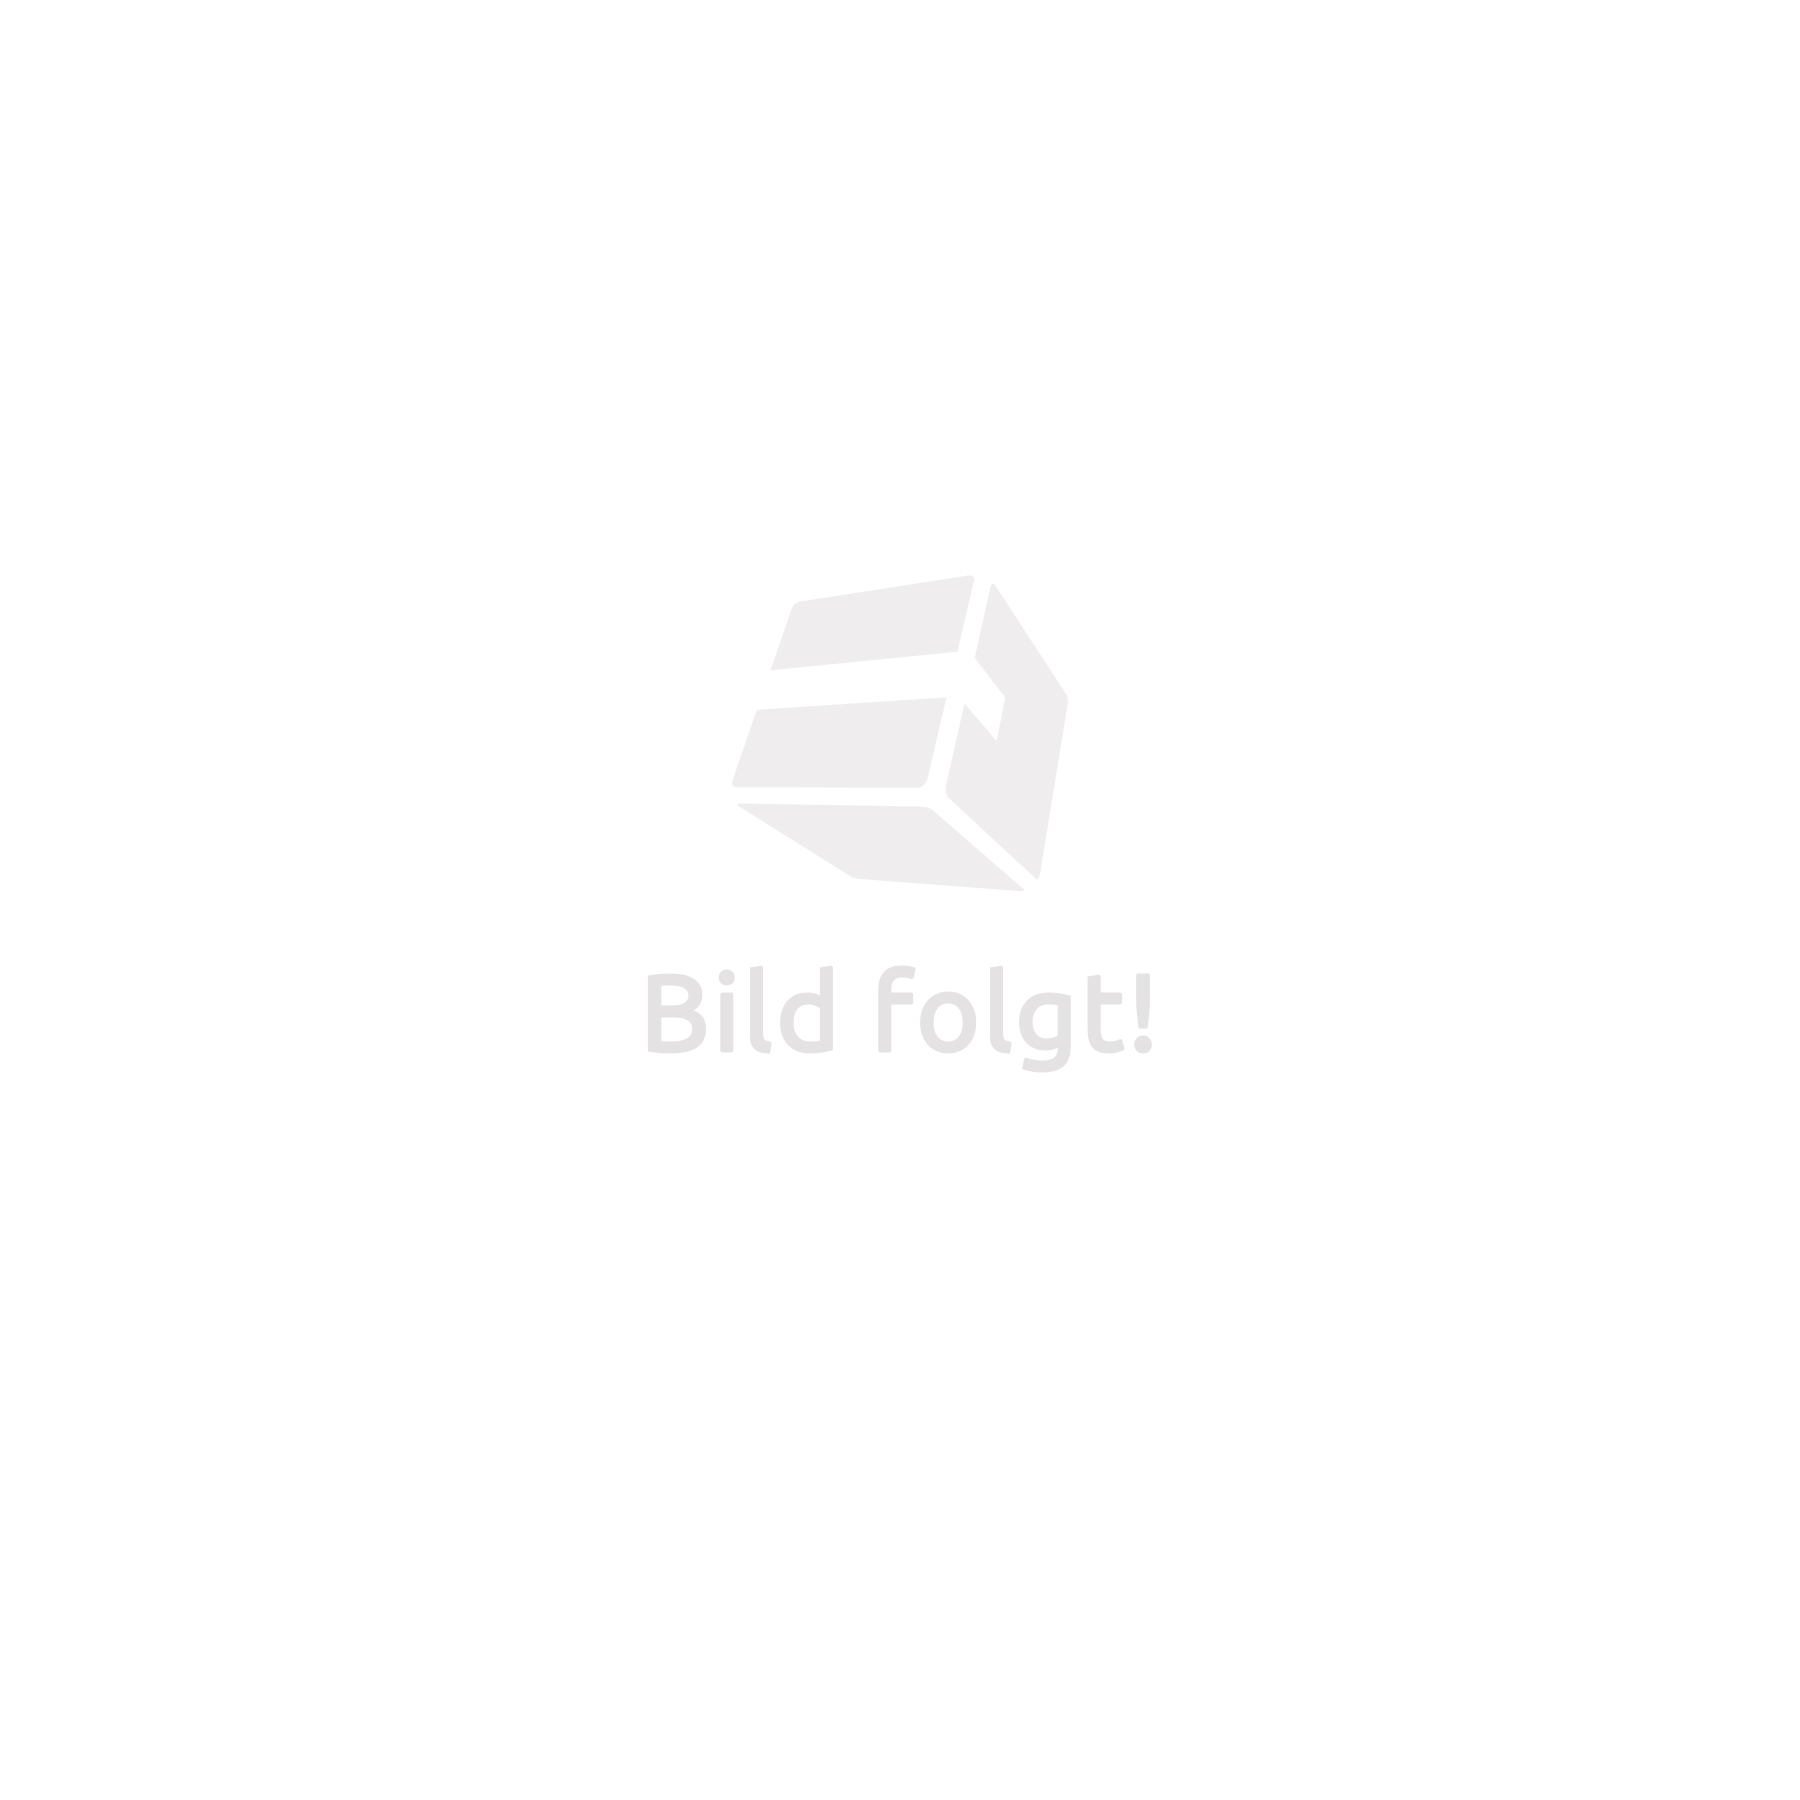 TV wall mount for 32-55 inch (81-140cm) can be tilted and swivelled dual arm